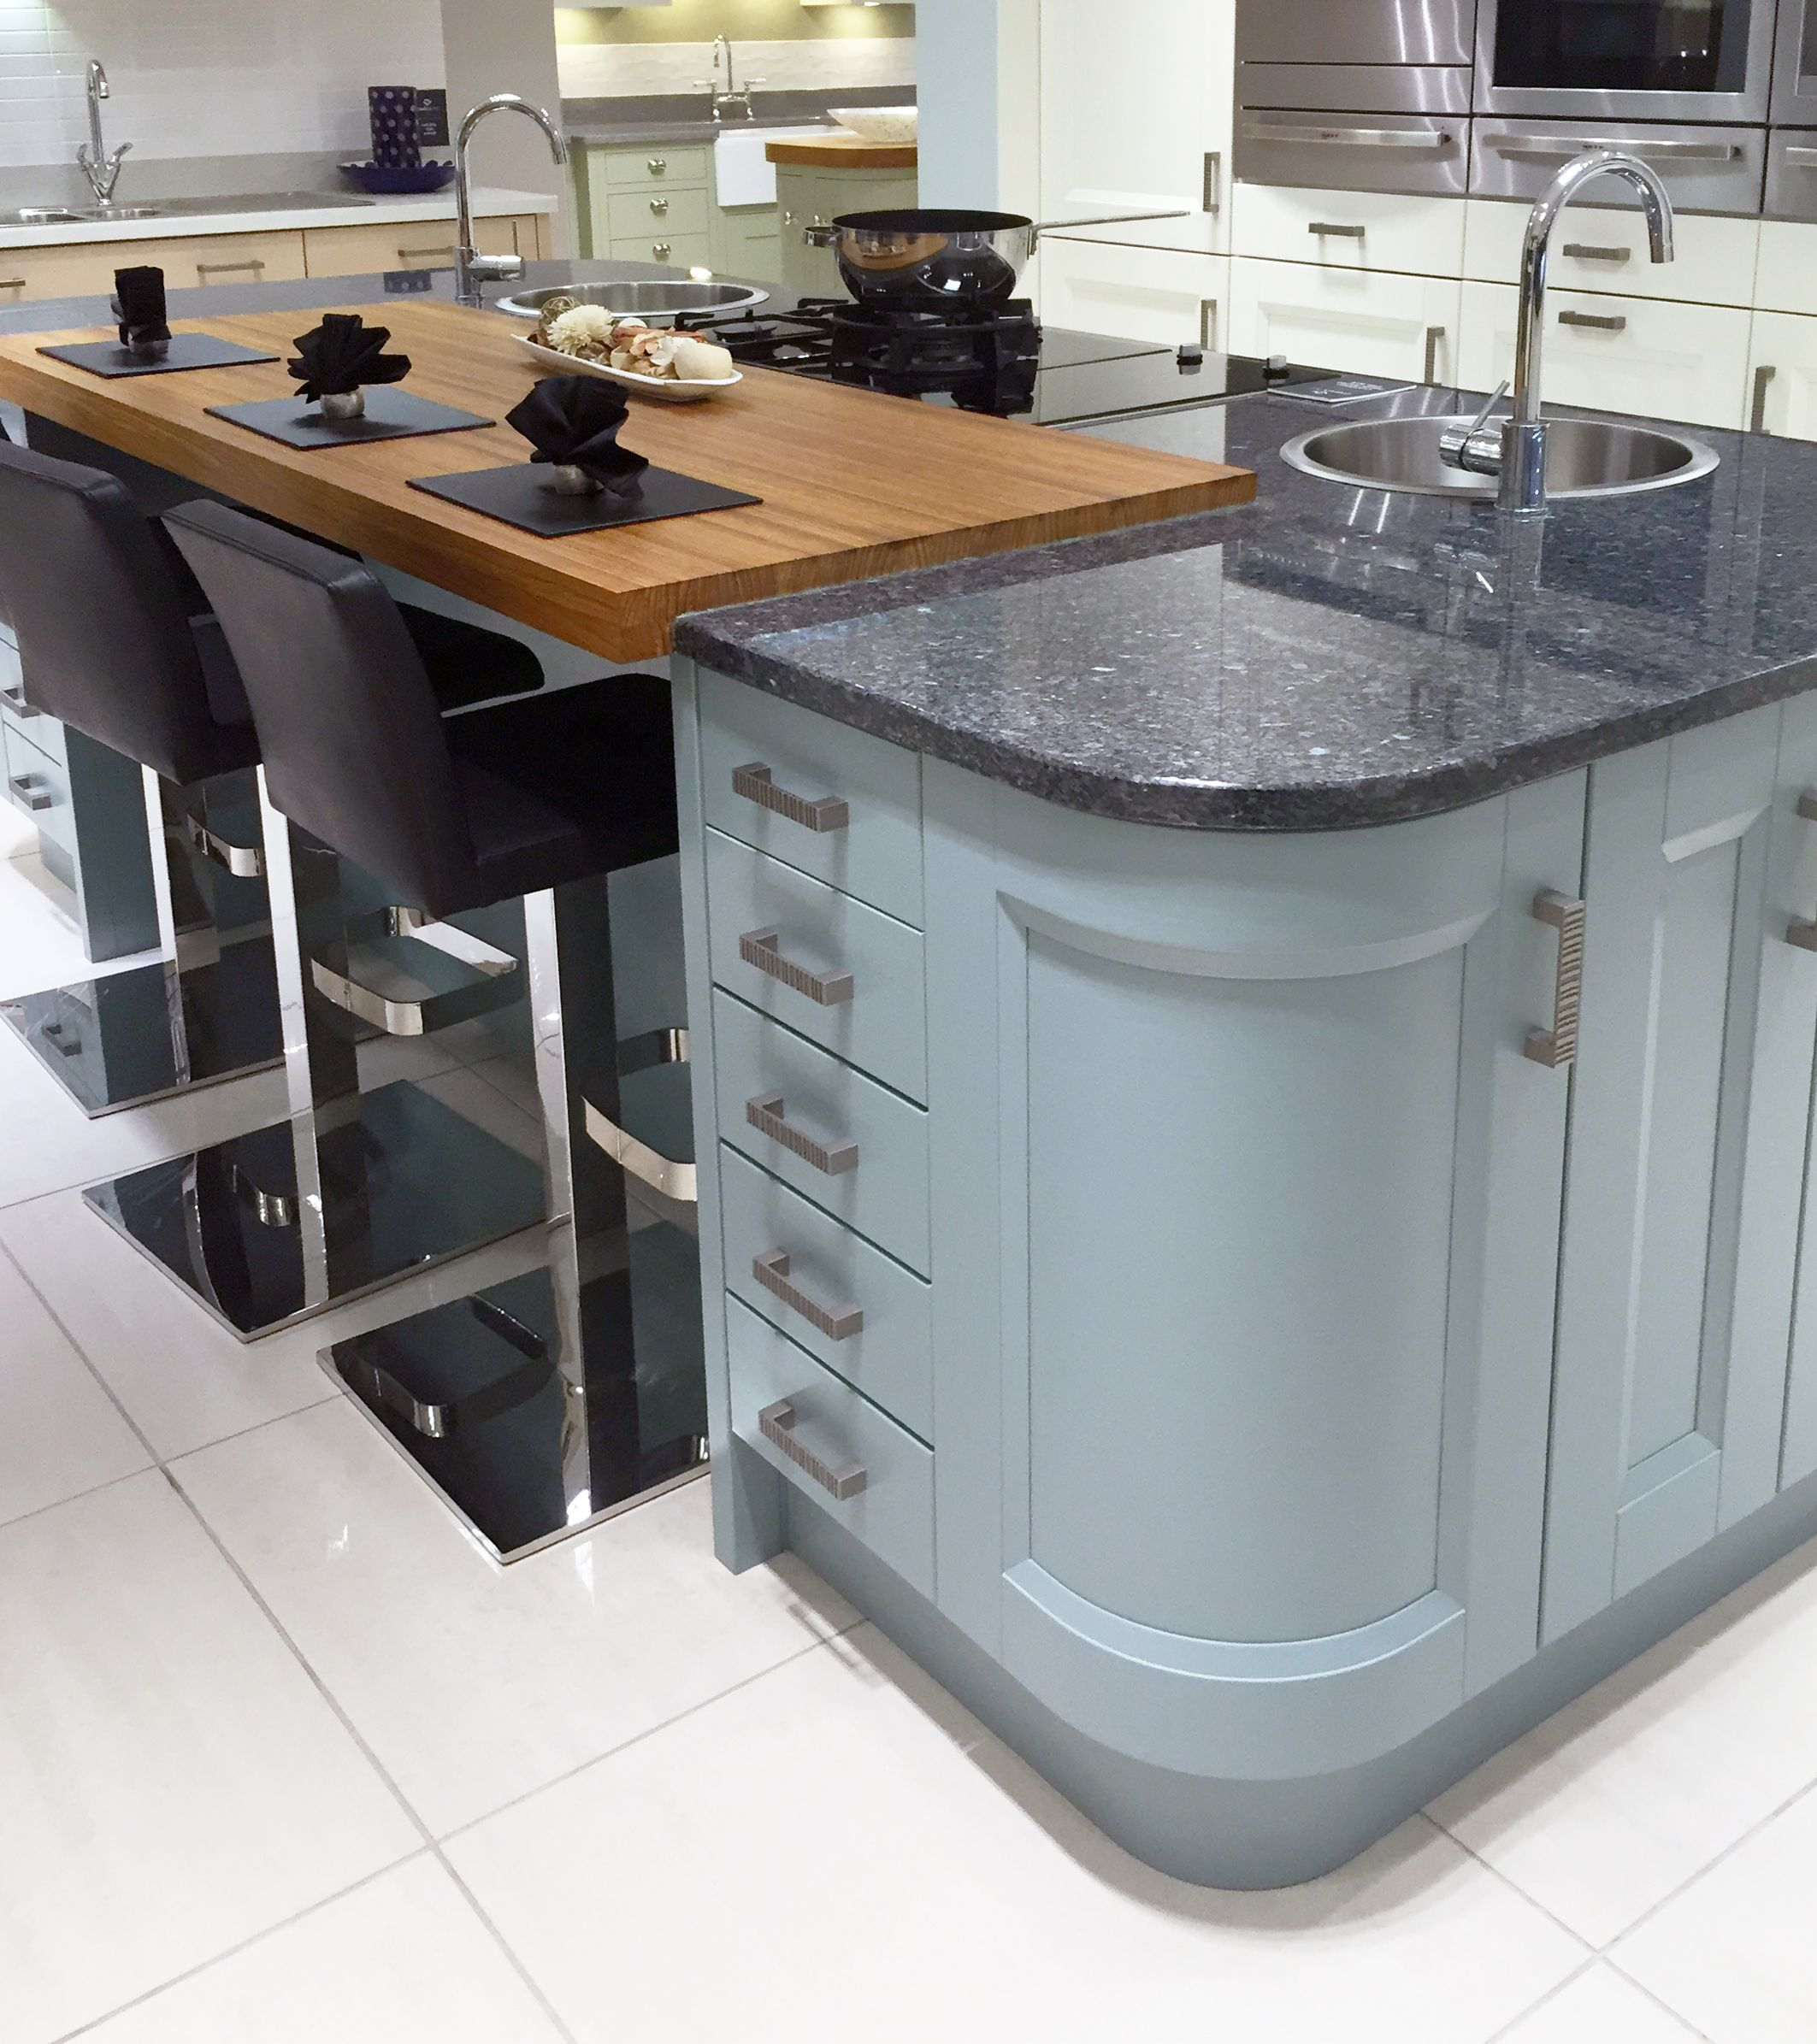 Kitchen Ideas Wooden Worktops: Contemporary Kitchen Island Design In Blue, With Curved